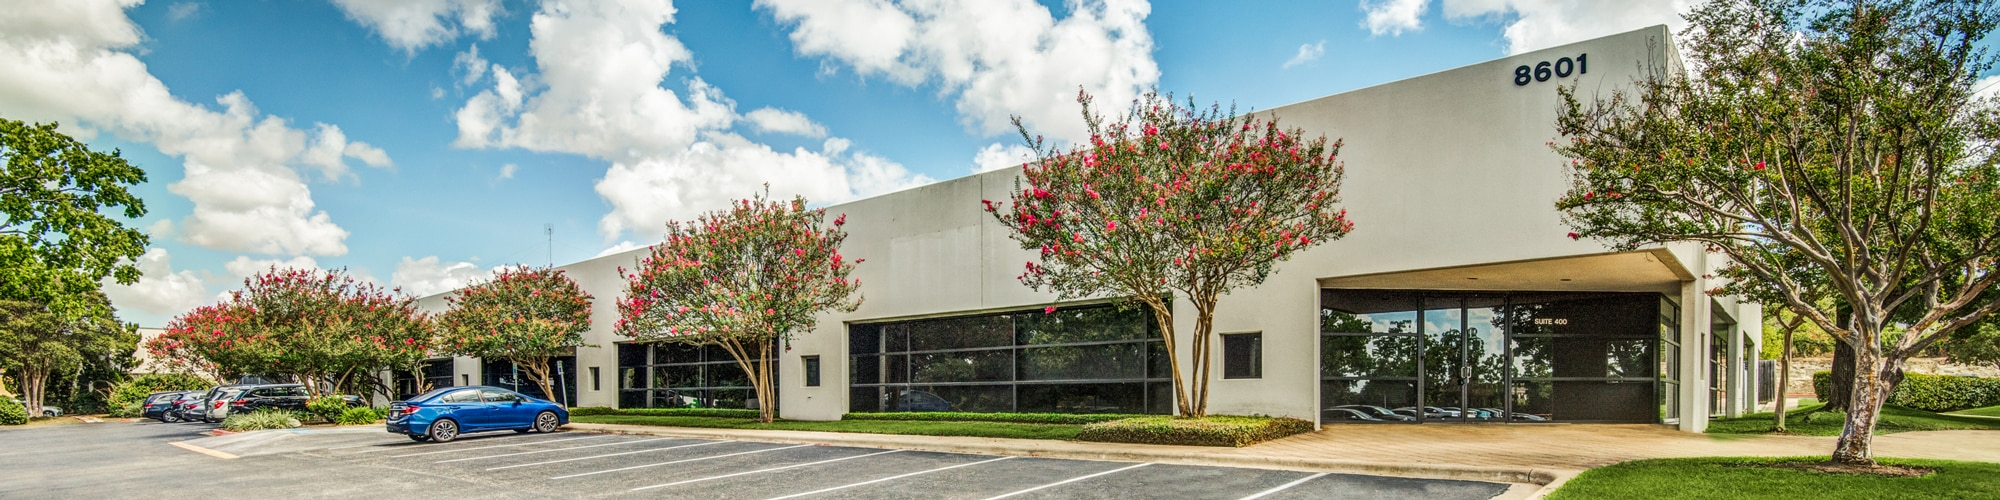 Cross-Creek-Business-Center-8601-Cross-Park-Drive